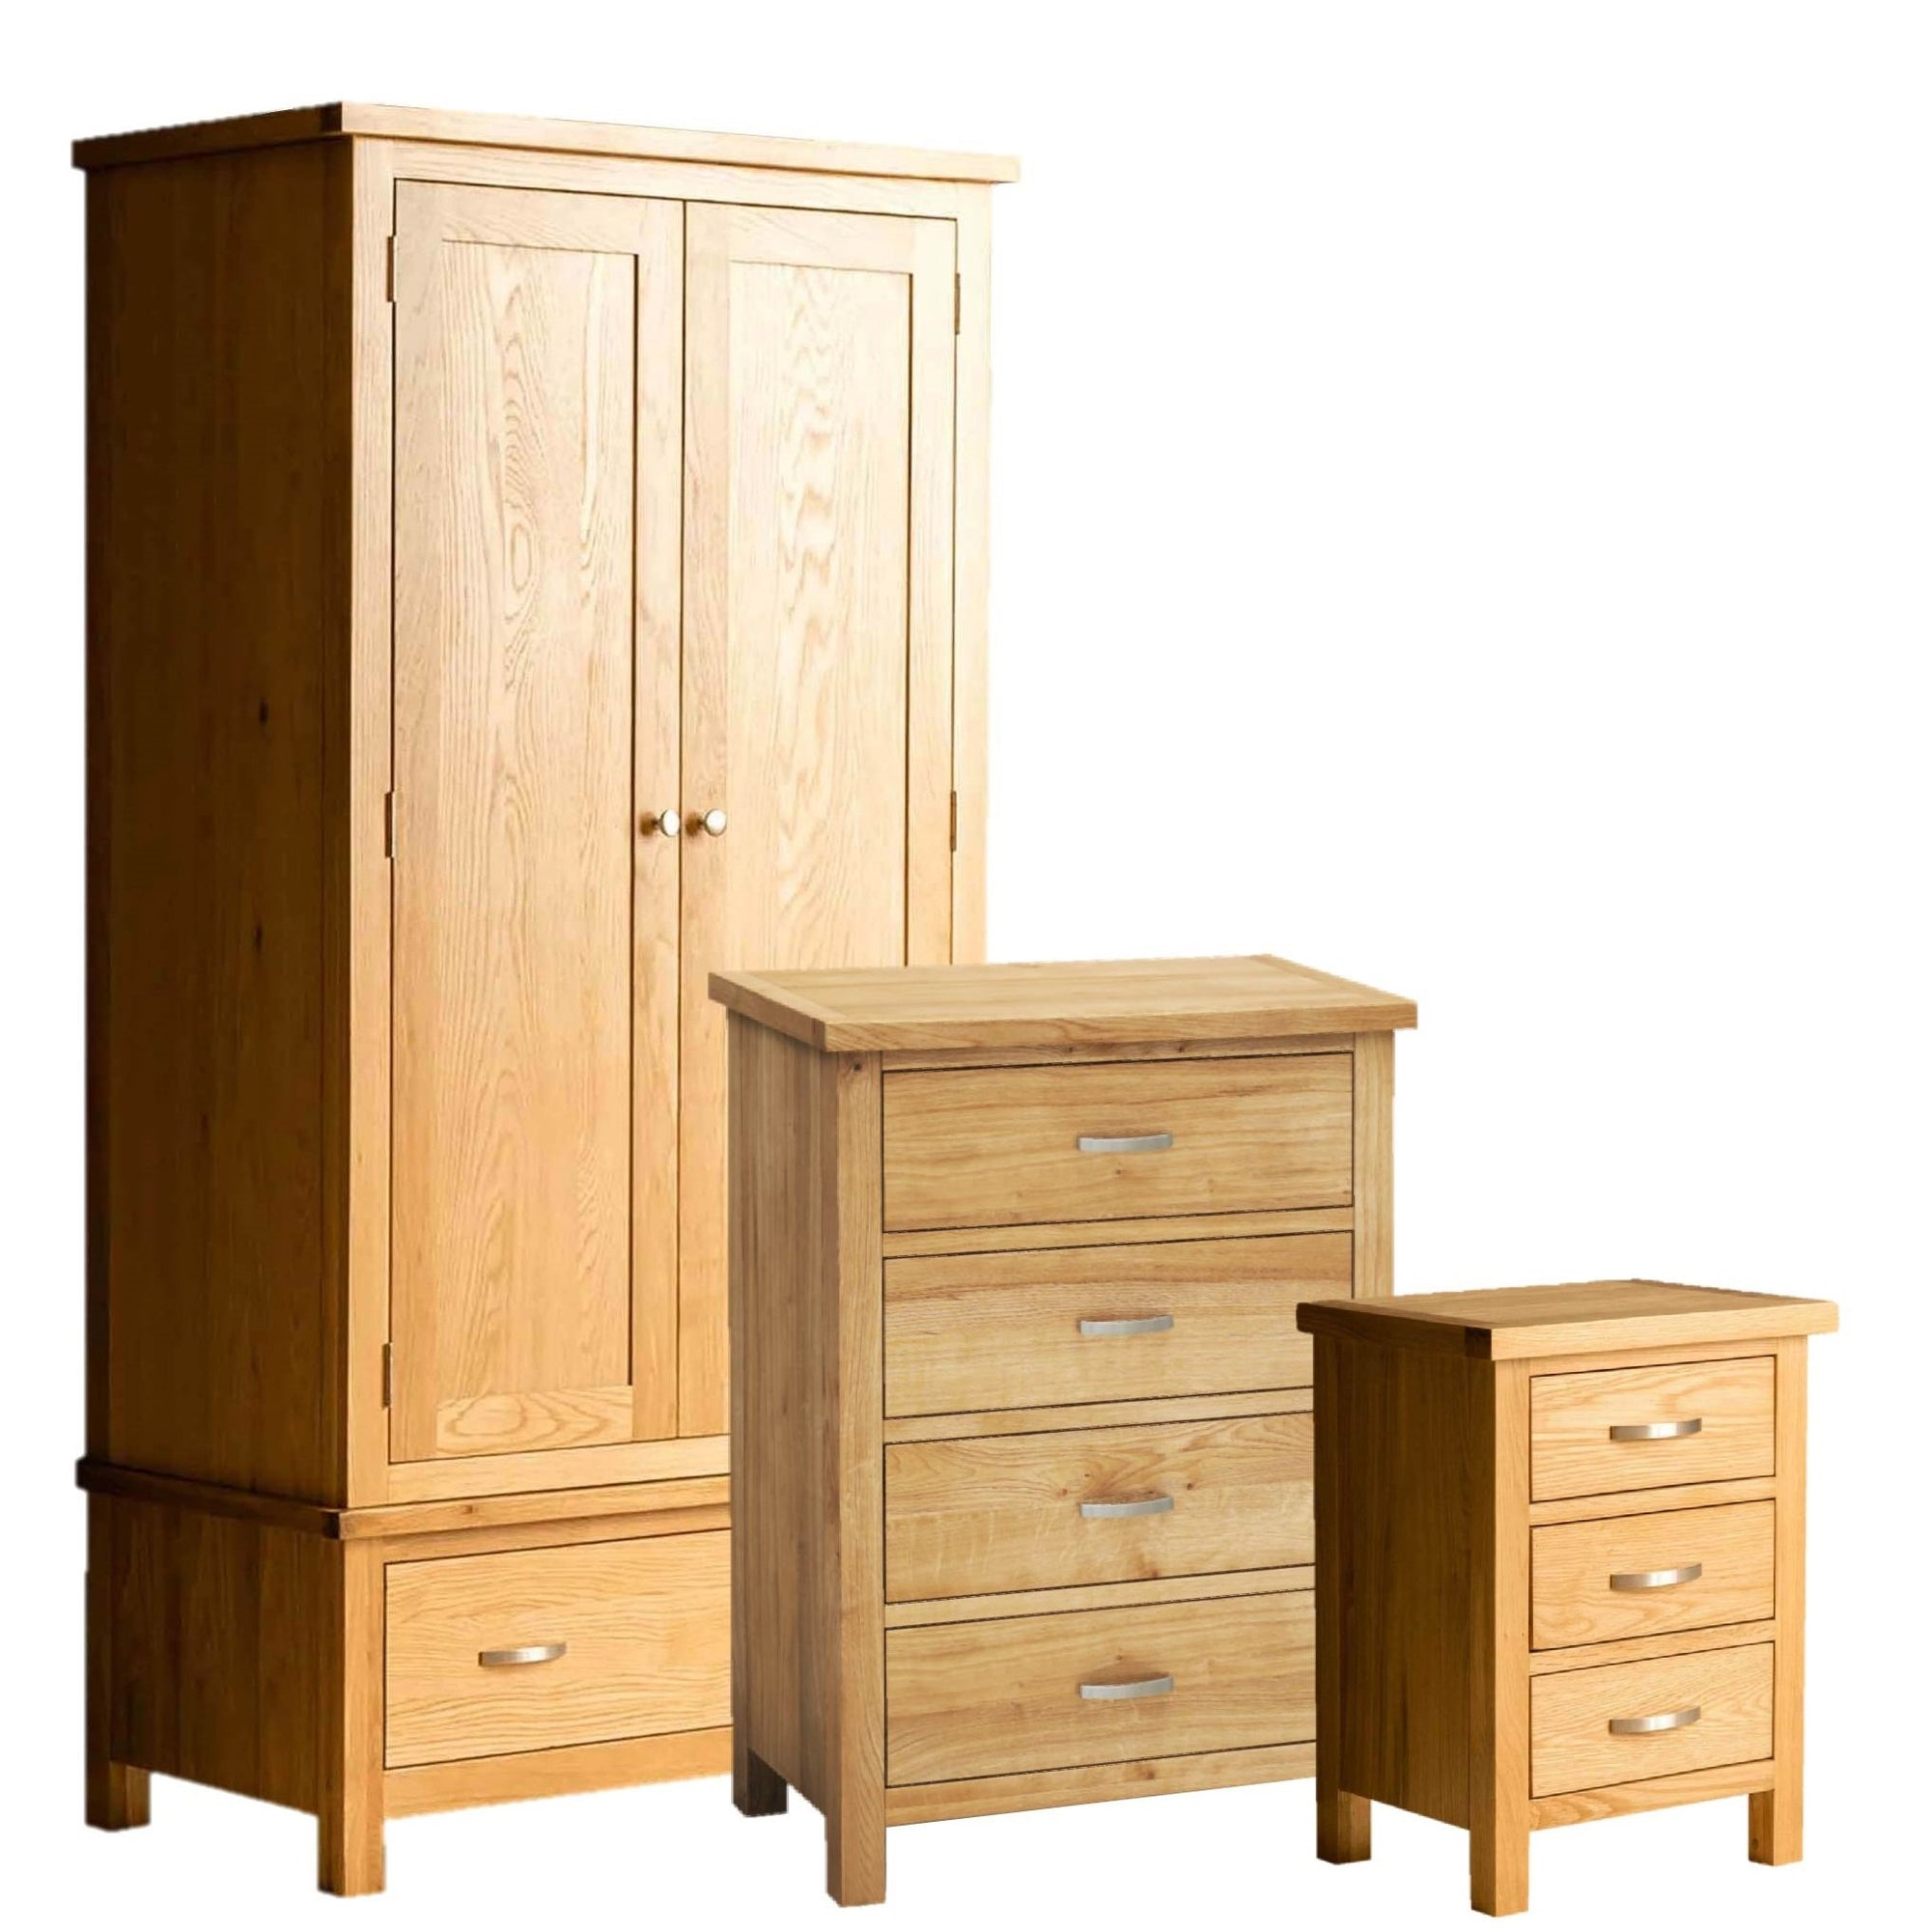 London Oak Bedroom Set = 4 drawer chest, bedside and double wardrobe by Roseland Furniture